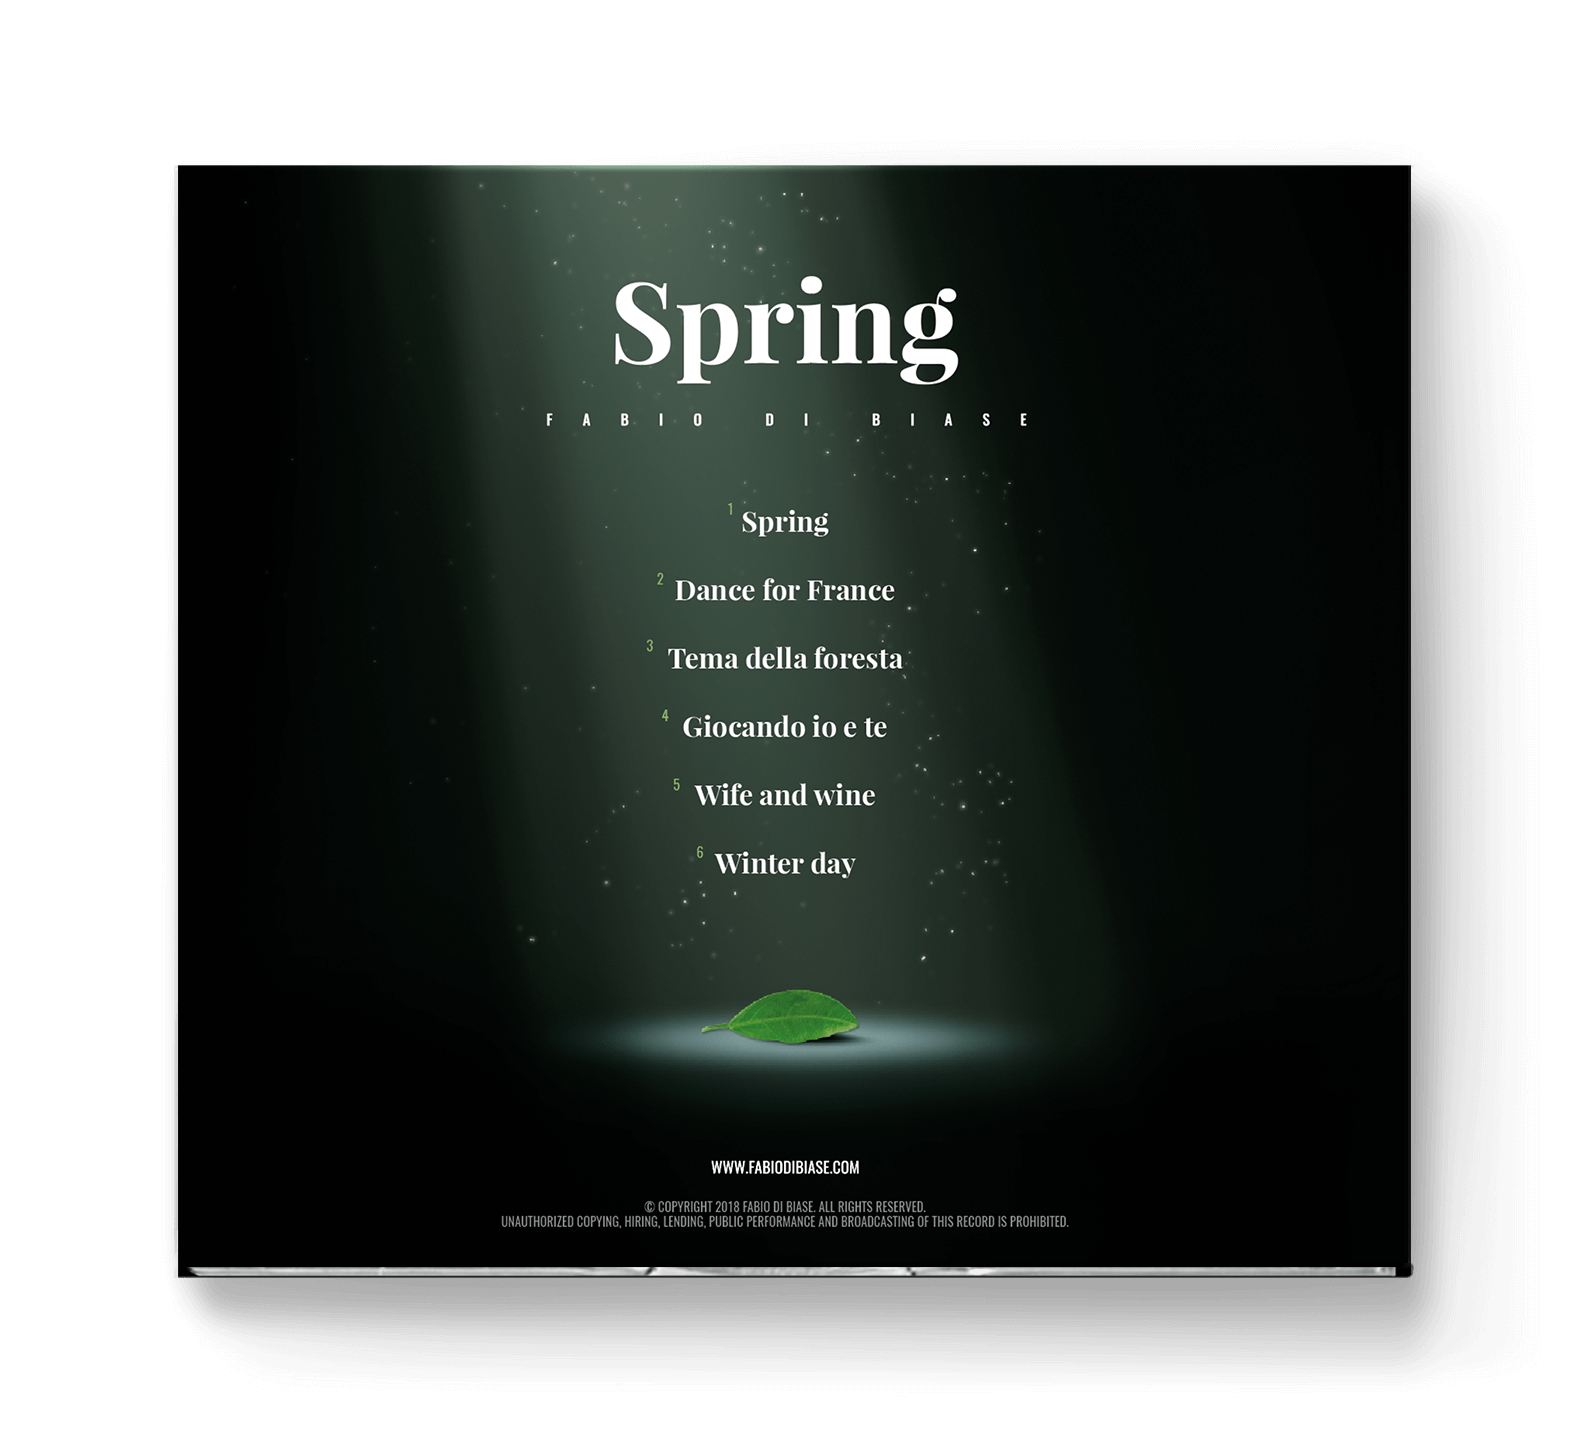 Spring piano solo album rear image